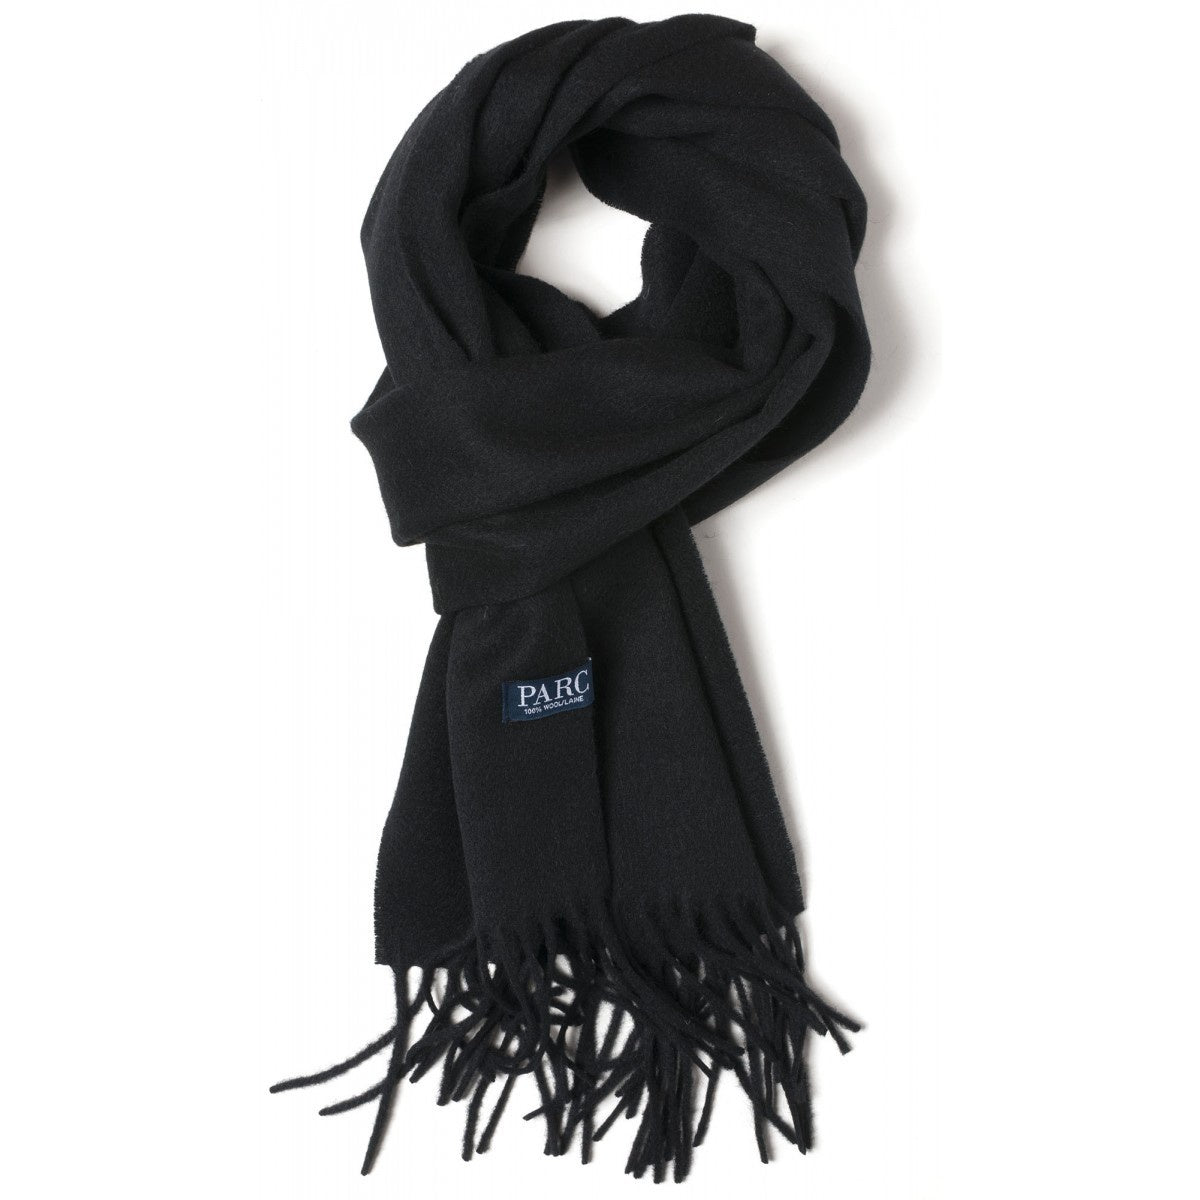 Parc City Boot Co. - Heavy Wool Scarf in Black Solid